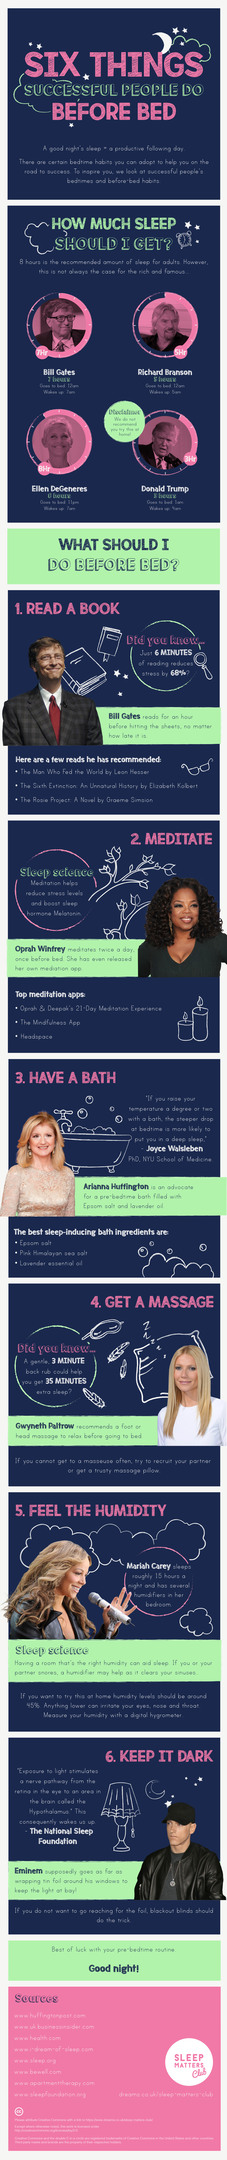 Successful People Before Bed infogram